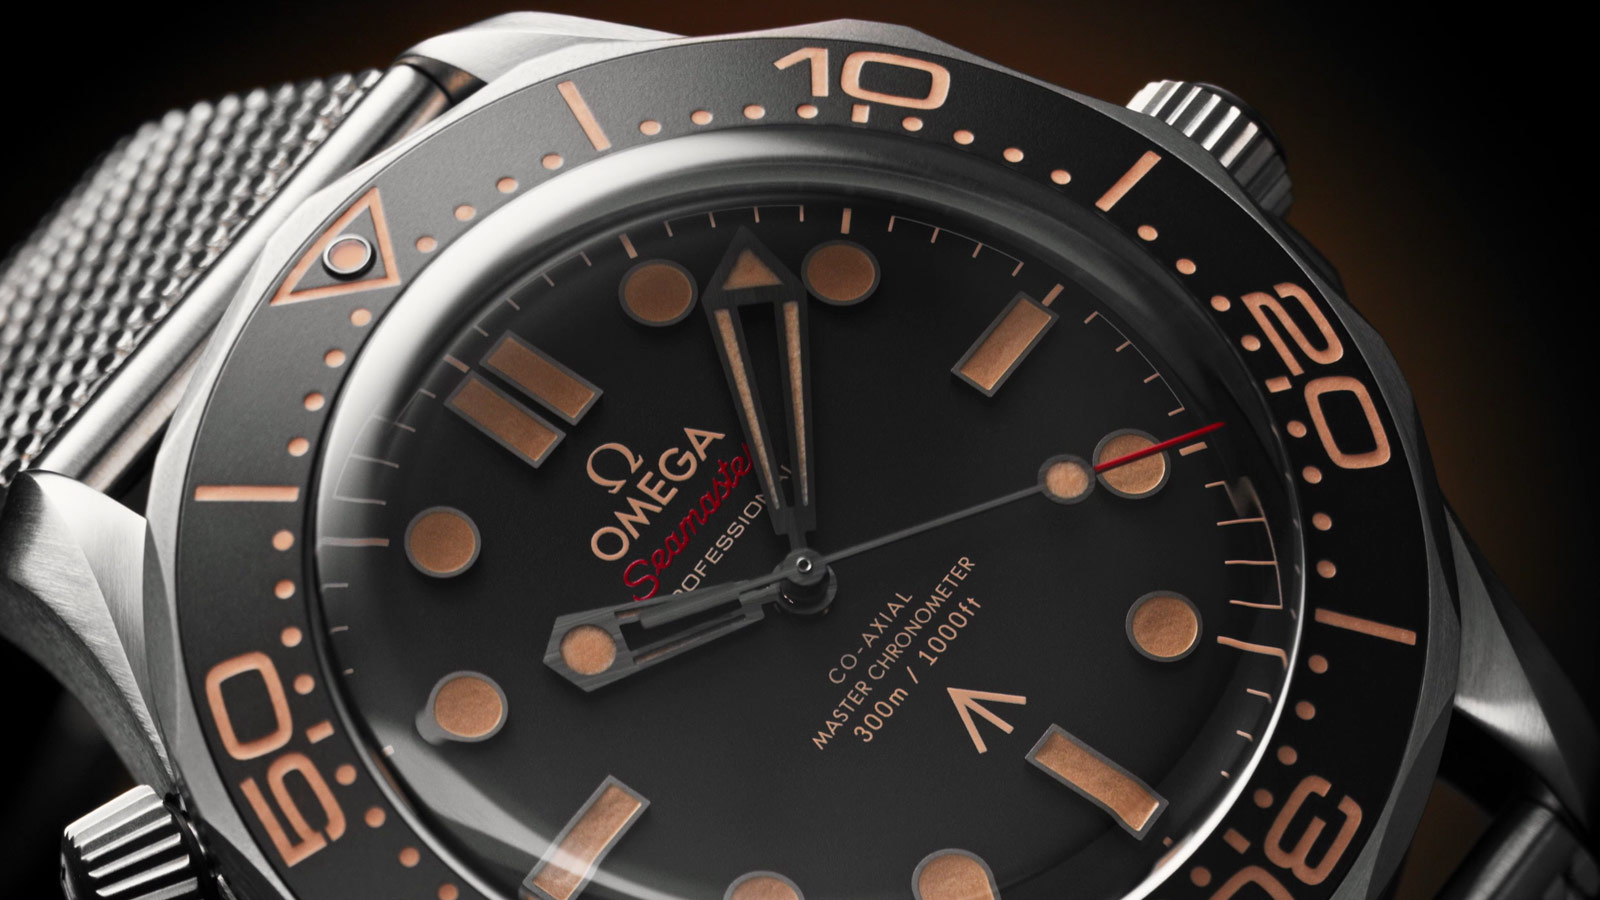 OMEGA® Swiss Luxury Watches Since 1848 - Video - 79094